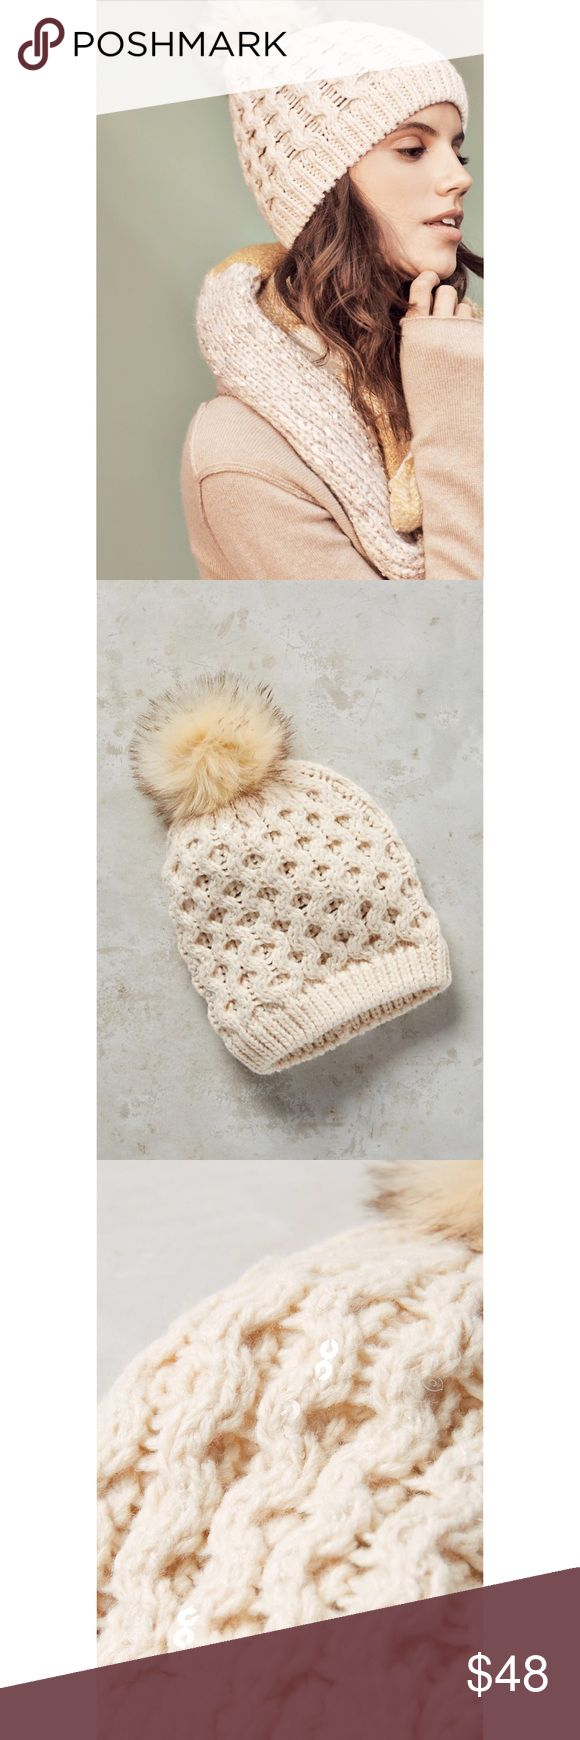 Anthropologie Estes Park Creme Beanie Details: This cozy beanie will keep you toasty warm on chilly days. Whether you're hitting the slopes or out running errands, this beanie topped with a pom and a little bit of sparkle from the clear tiny sequin detail will add cheer and whimsy to your day. Size: One Size. Brand new with tags. Perfect condition; no flaws. Blogger favorite; this style is sold out. Including tax/Anthropologie shipping, retail: $58.  Acrylic Sequin detail Dry clean Imported…